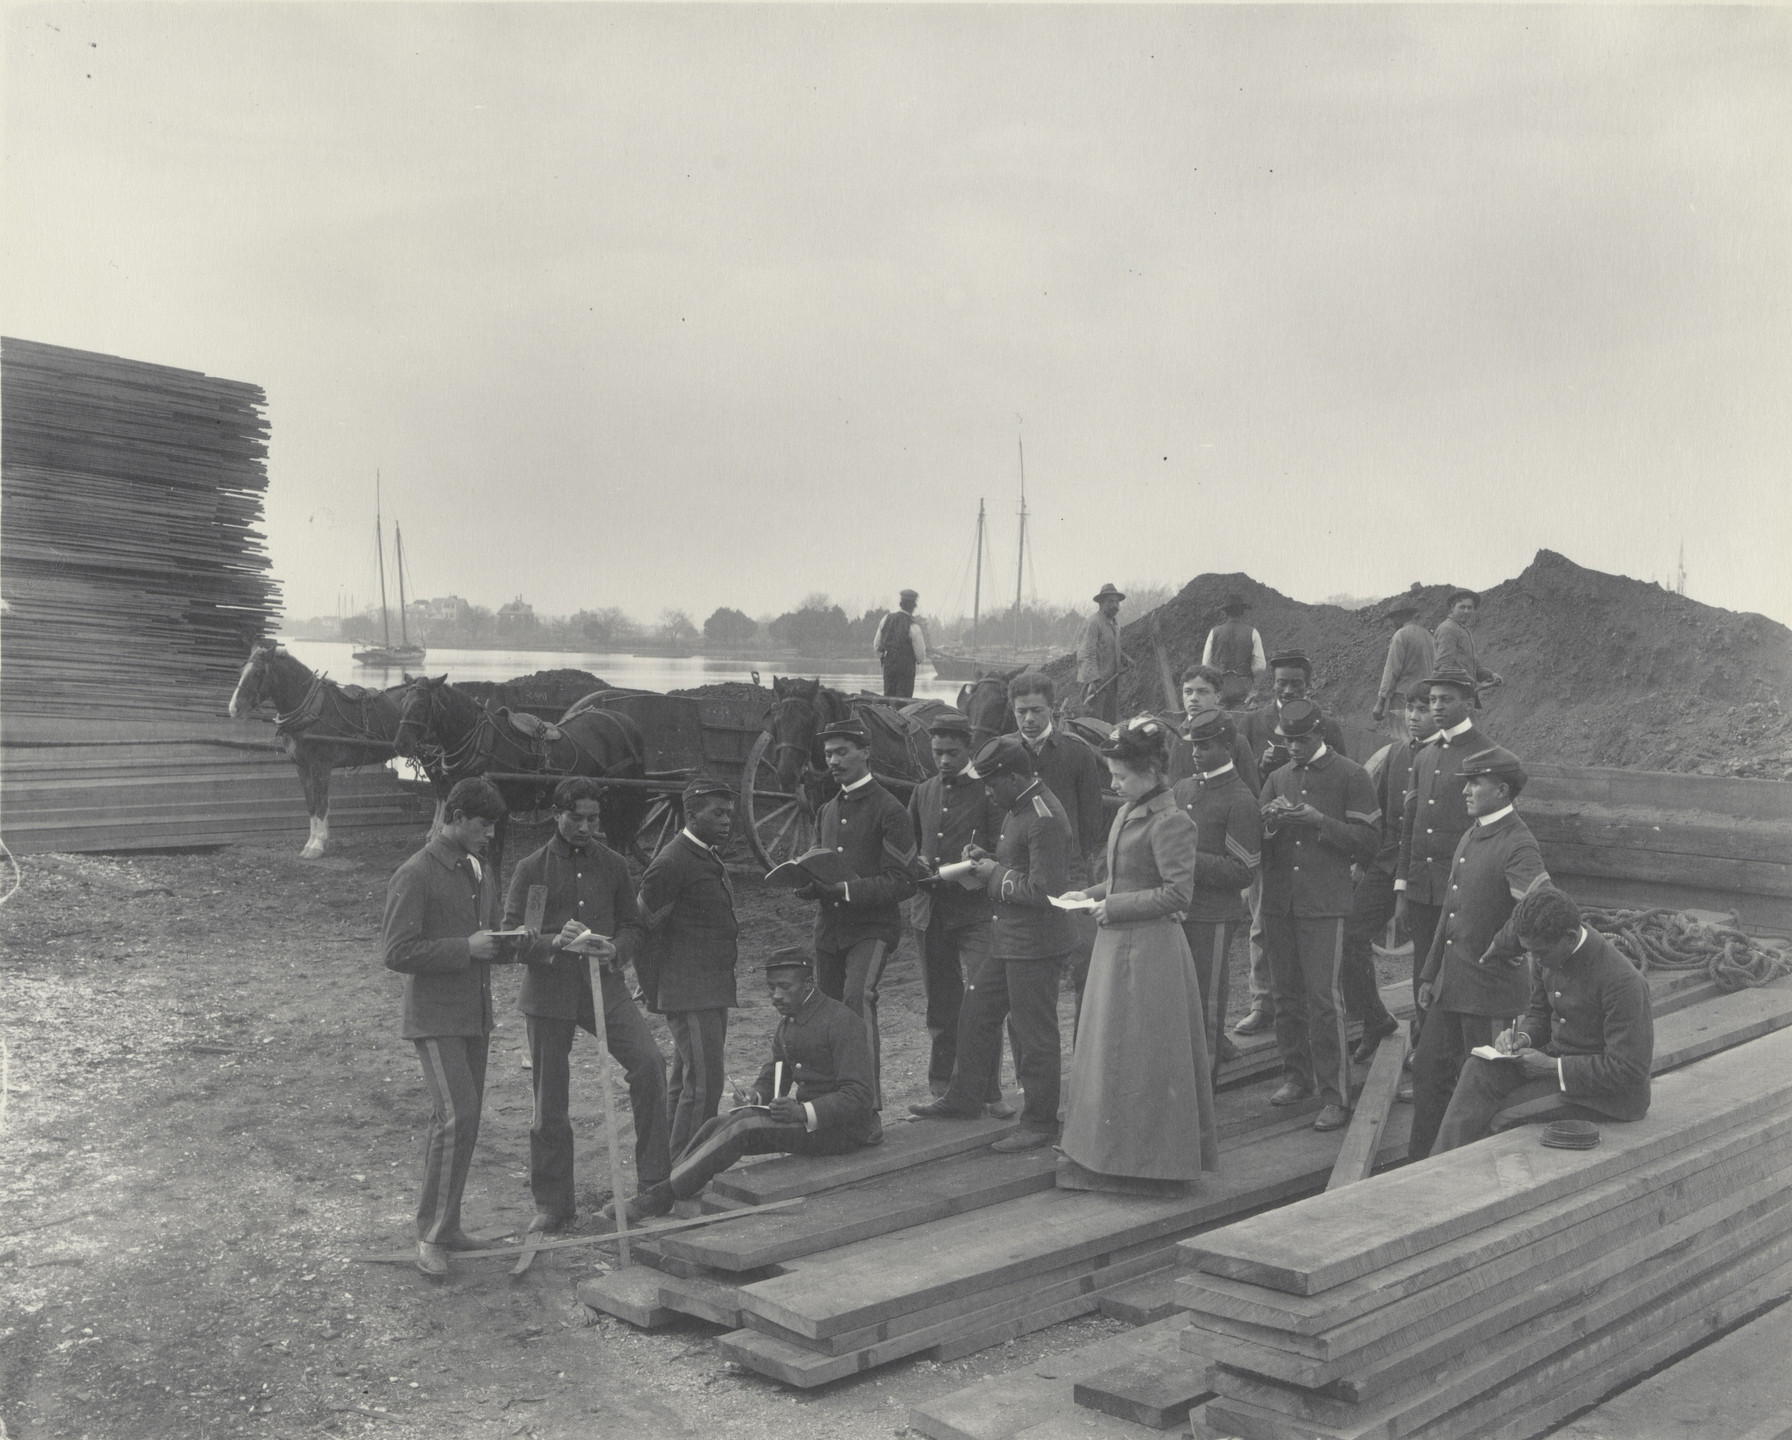 Frances Benjamin Johnston. Geography. Lesson on local industries. - lumber and coal at School wharf. 1899-1900